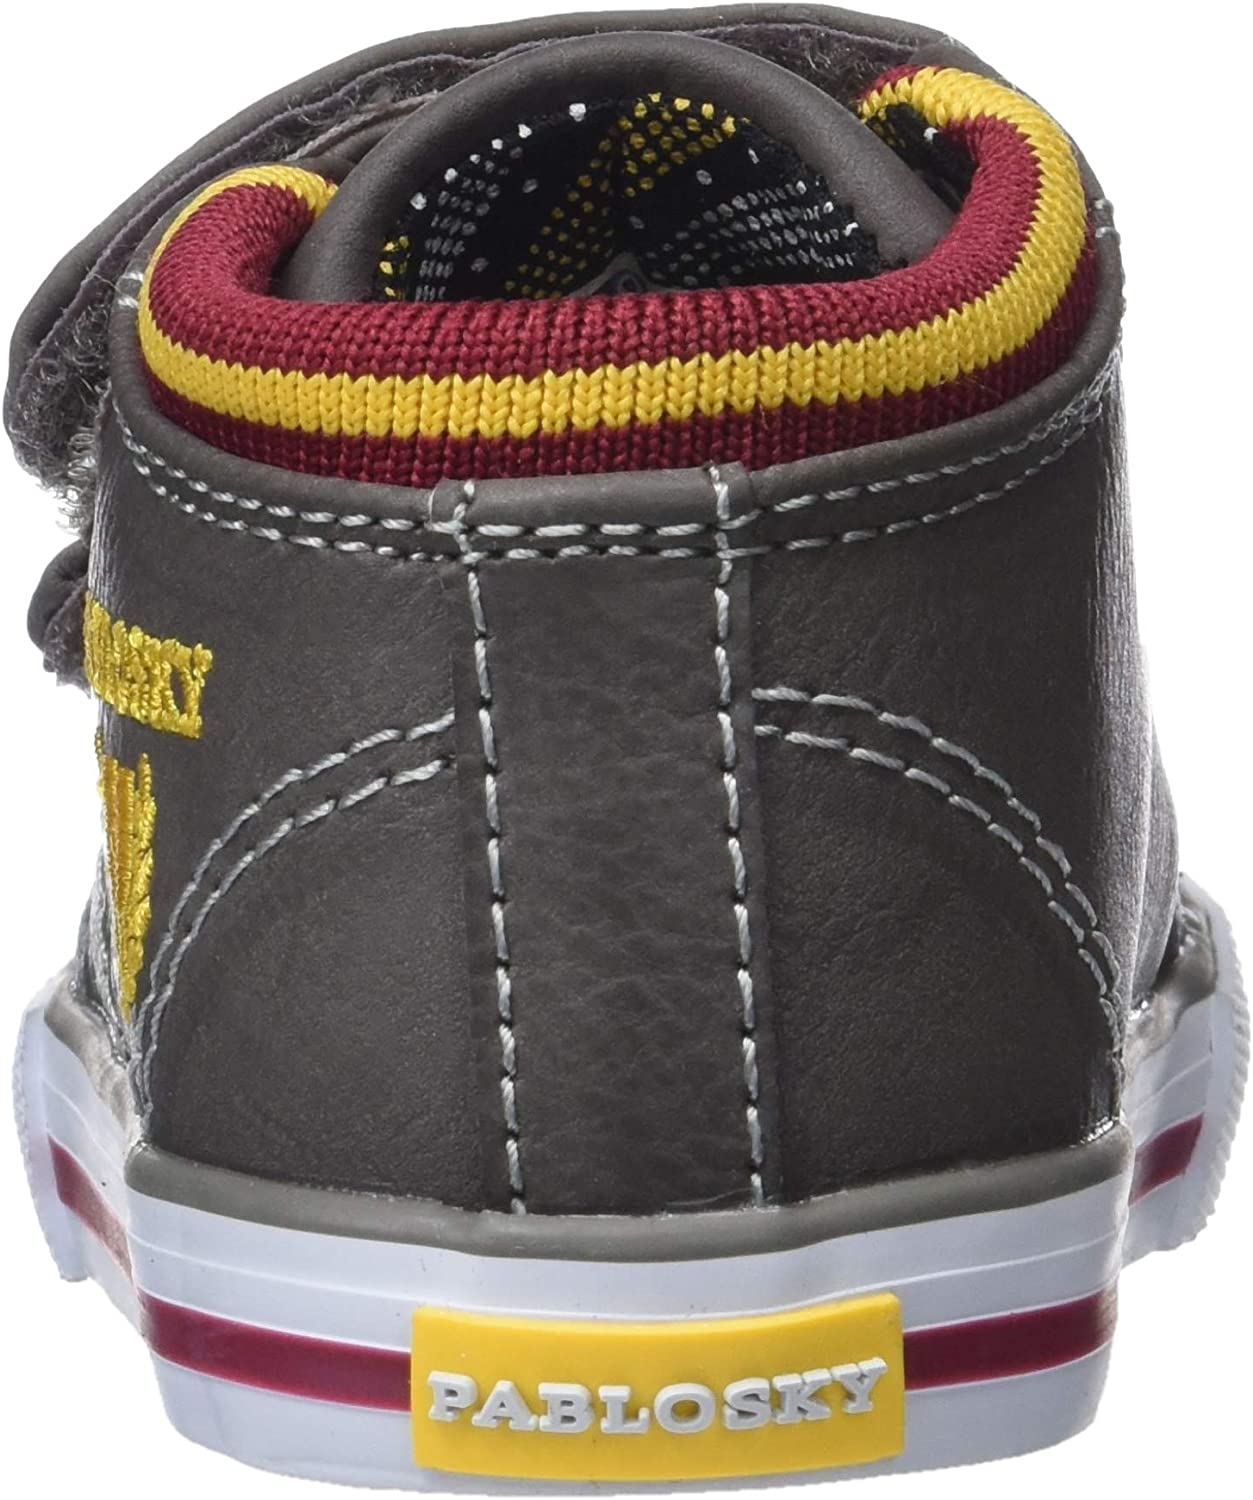 Pablosky Boys 951750 Low-Top Sneakers